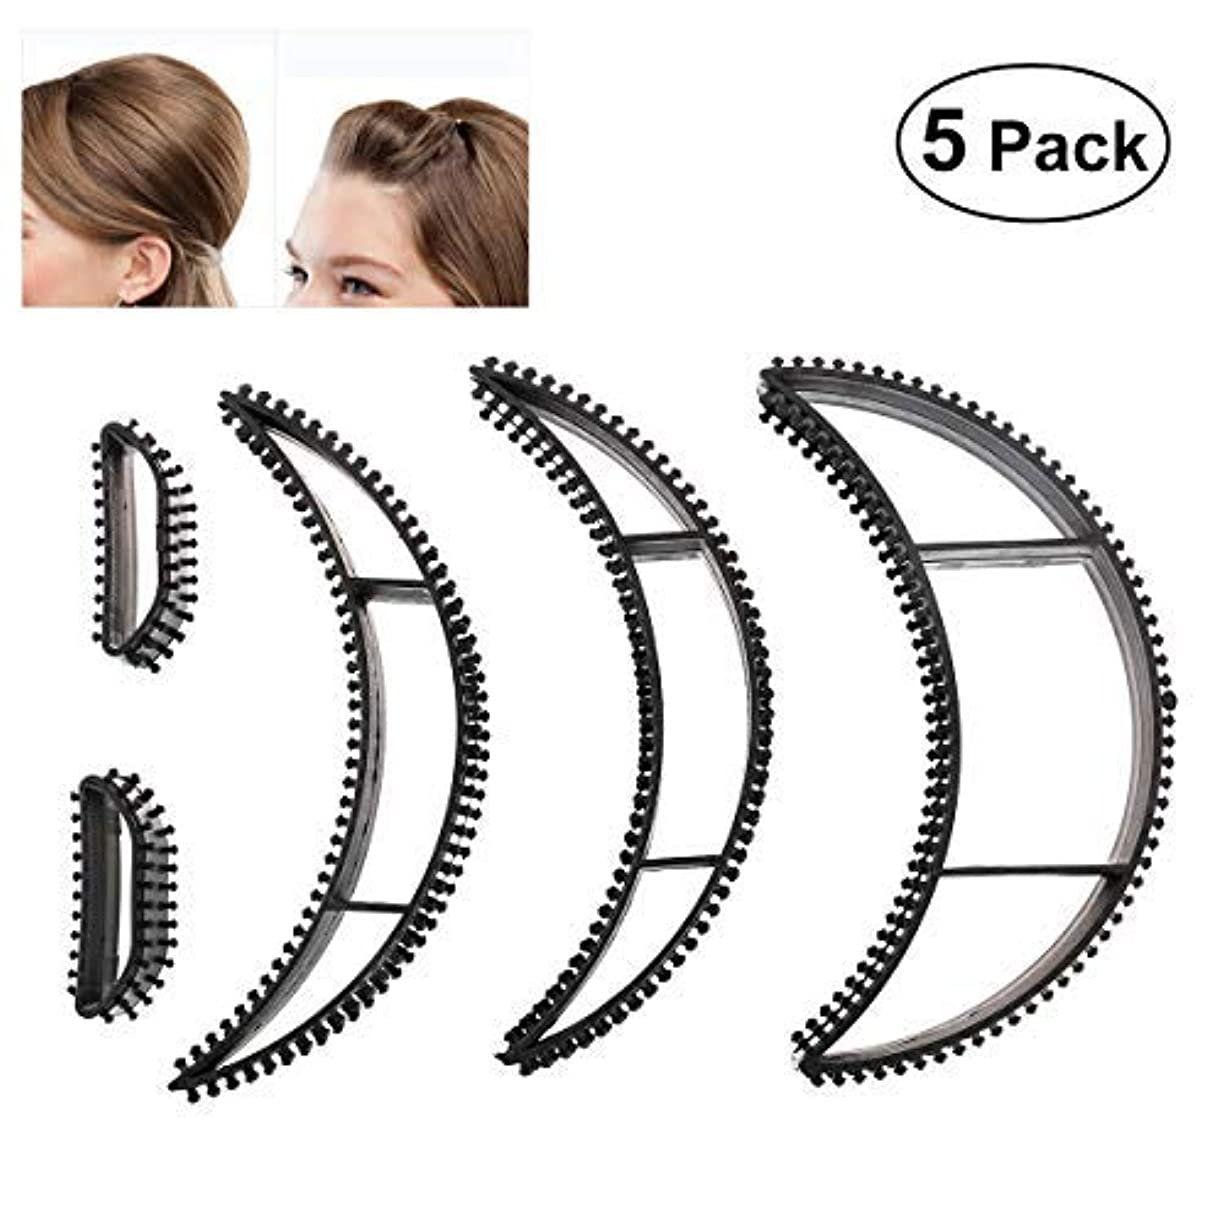 間違いなくインテリア語Tinksky Big Bumpits Happie Hair Volumizing Inserts Hair Pump Beauty Set Tool Gift,Pack of 5 (Black) [並行輸入品]